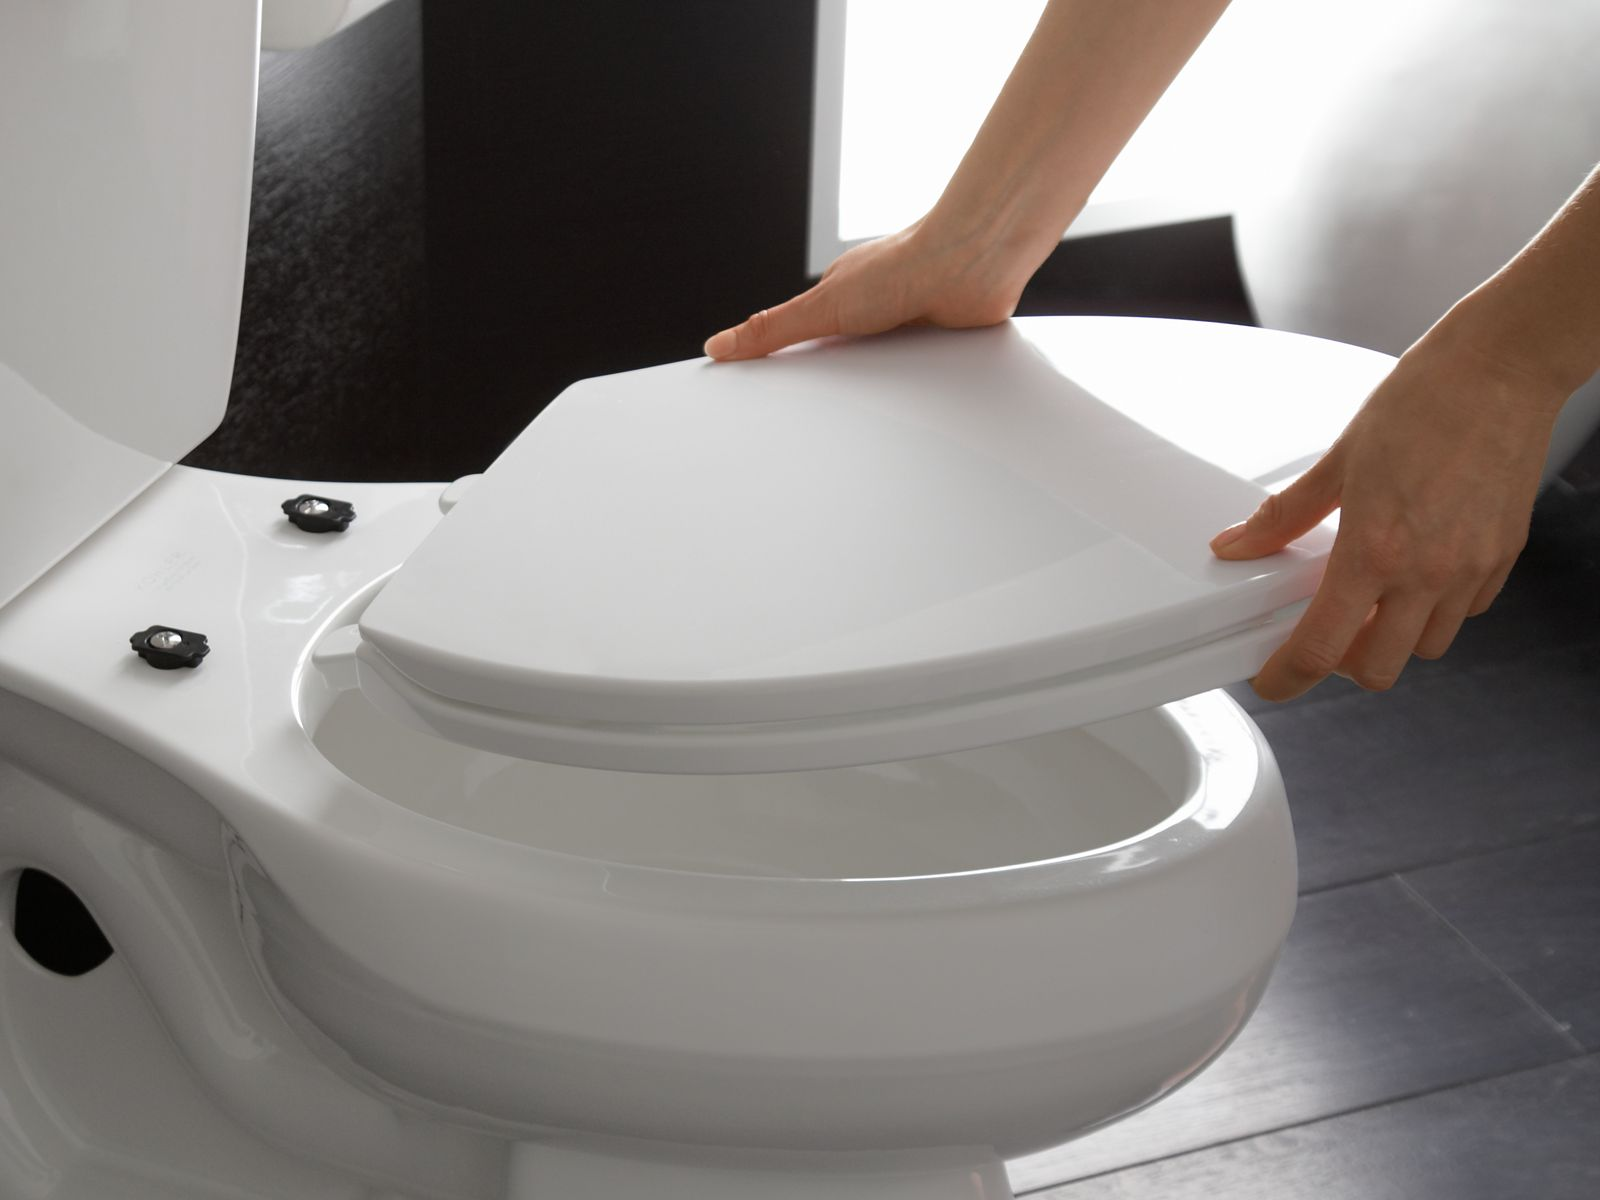 toilet seats guide: features | bathroom | kohler